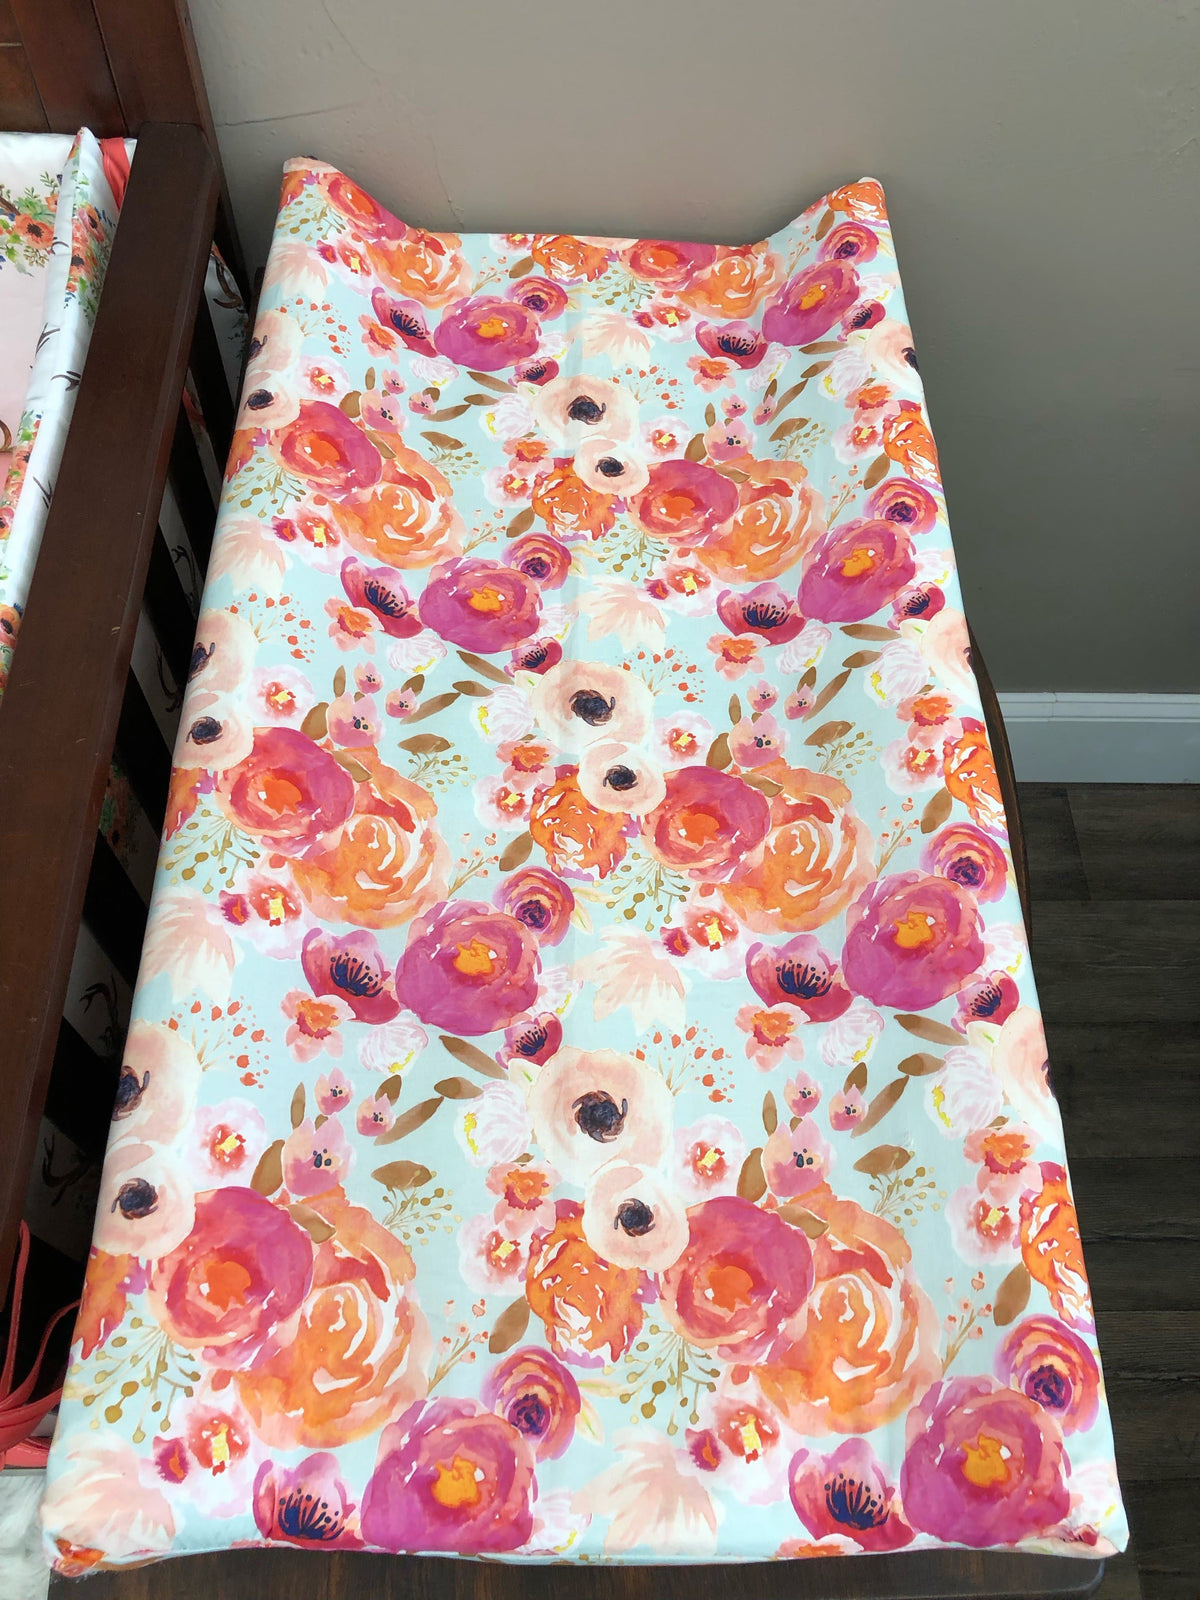 Changing Pad Cover - Watercolor Floral